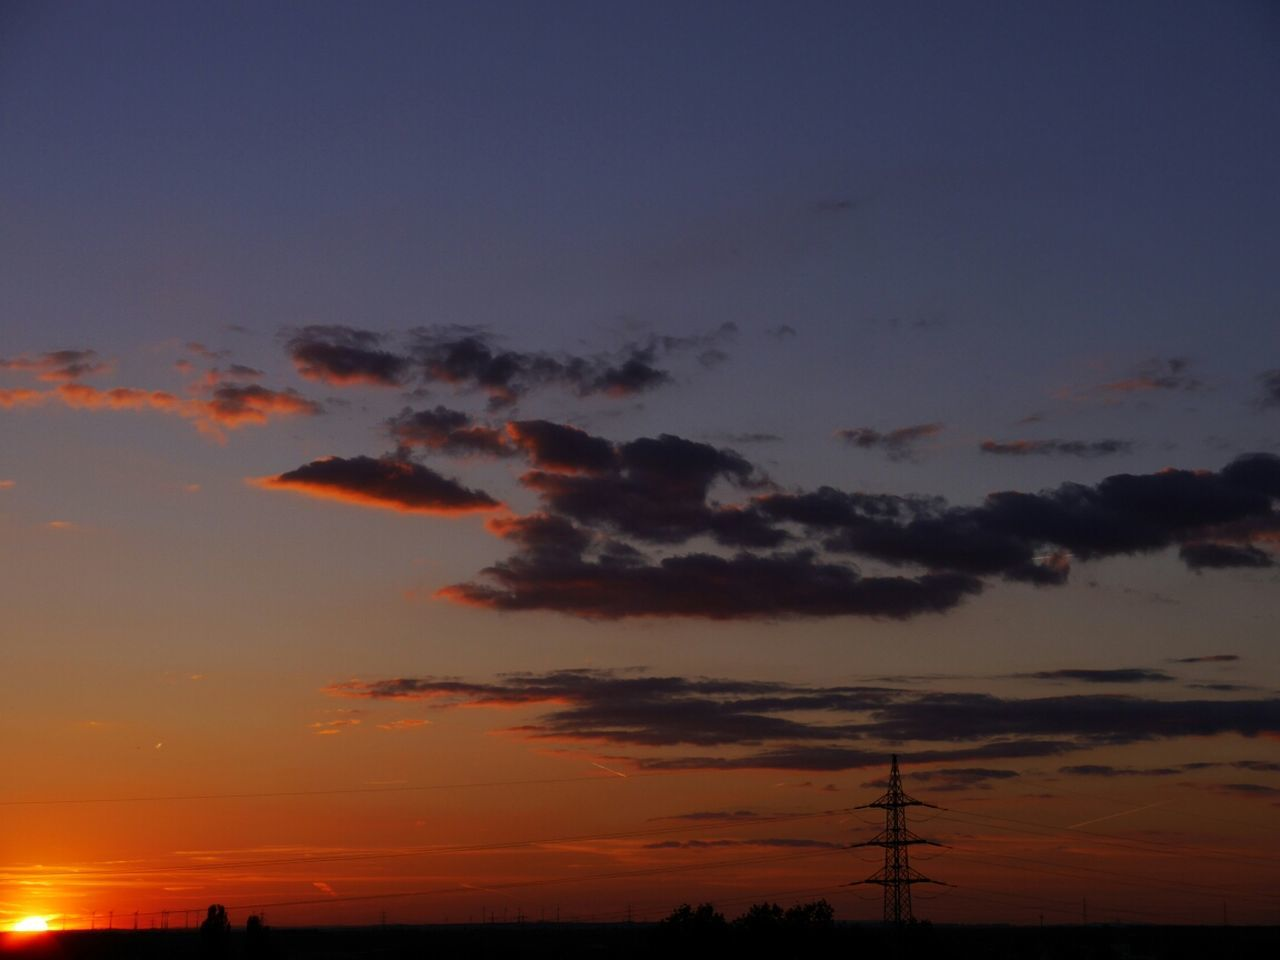 sunset, silhouette, nature, sky, beauty in nature, scenics, no people, electricity pylon, tranquility, tranquil scene, cloud - sky, cable, outdoors, electricity, technology